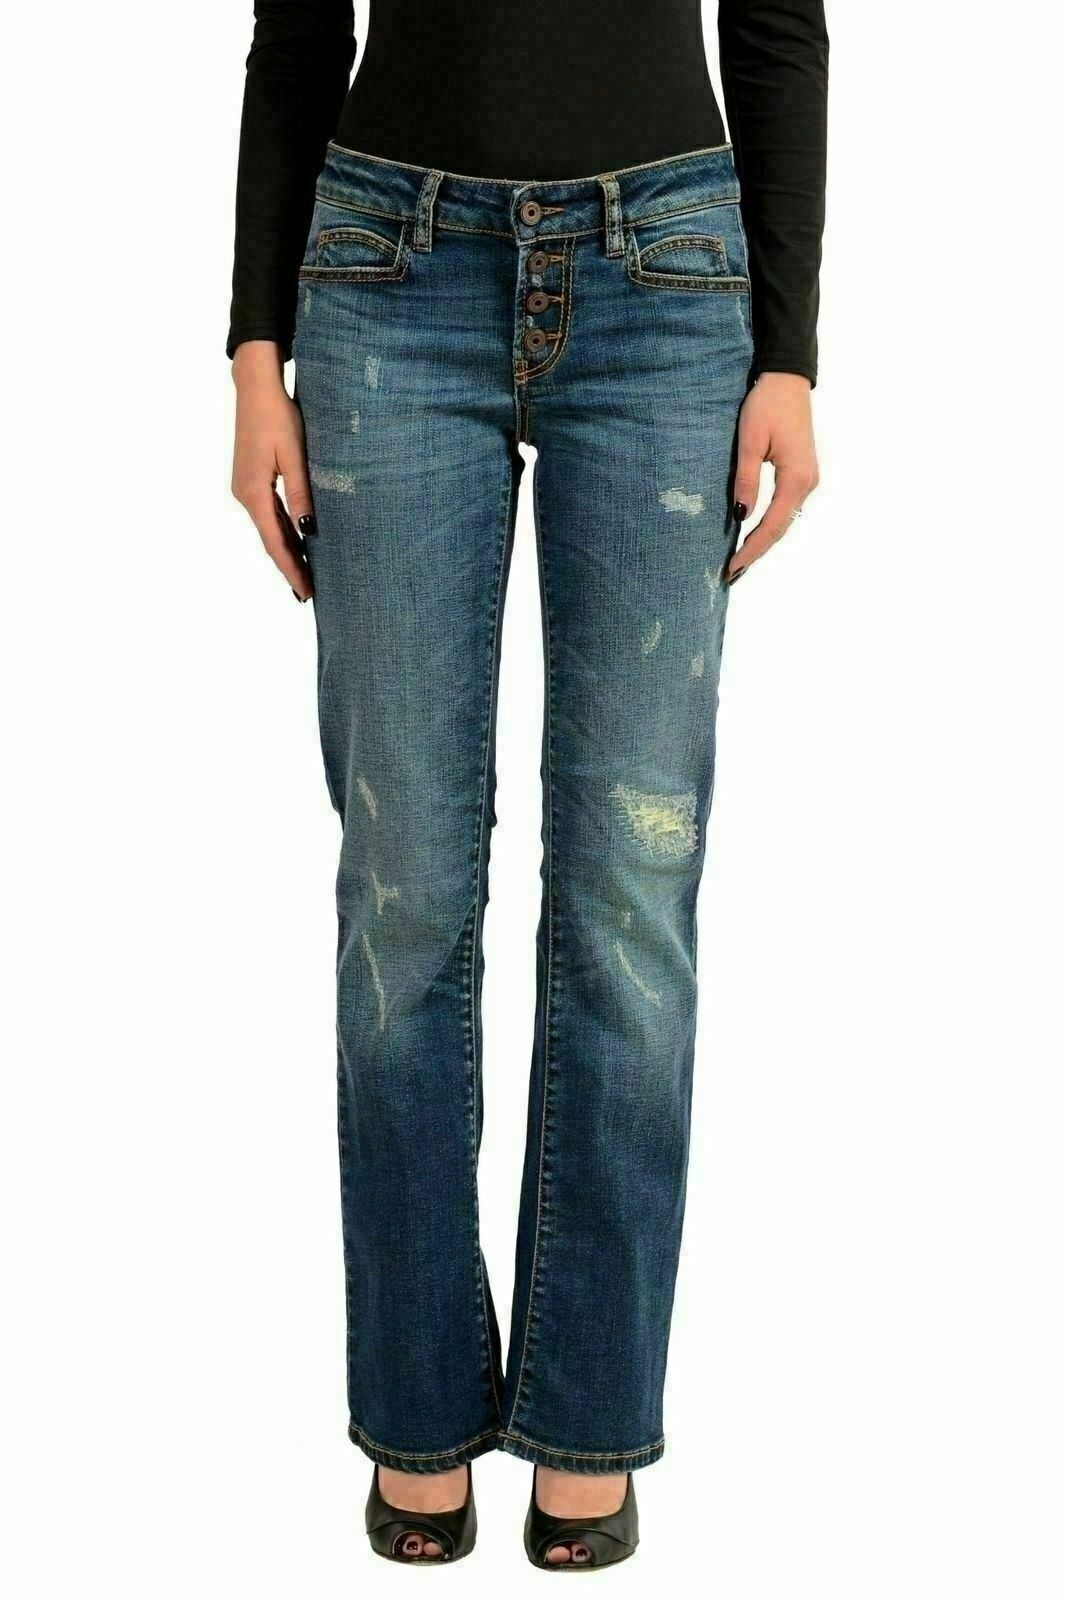 Just Cavalli Women's bluee Ripped Designed Straight Leg Jeans US 26 IT 40